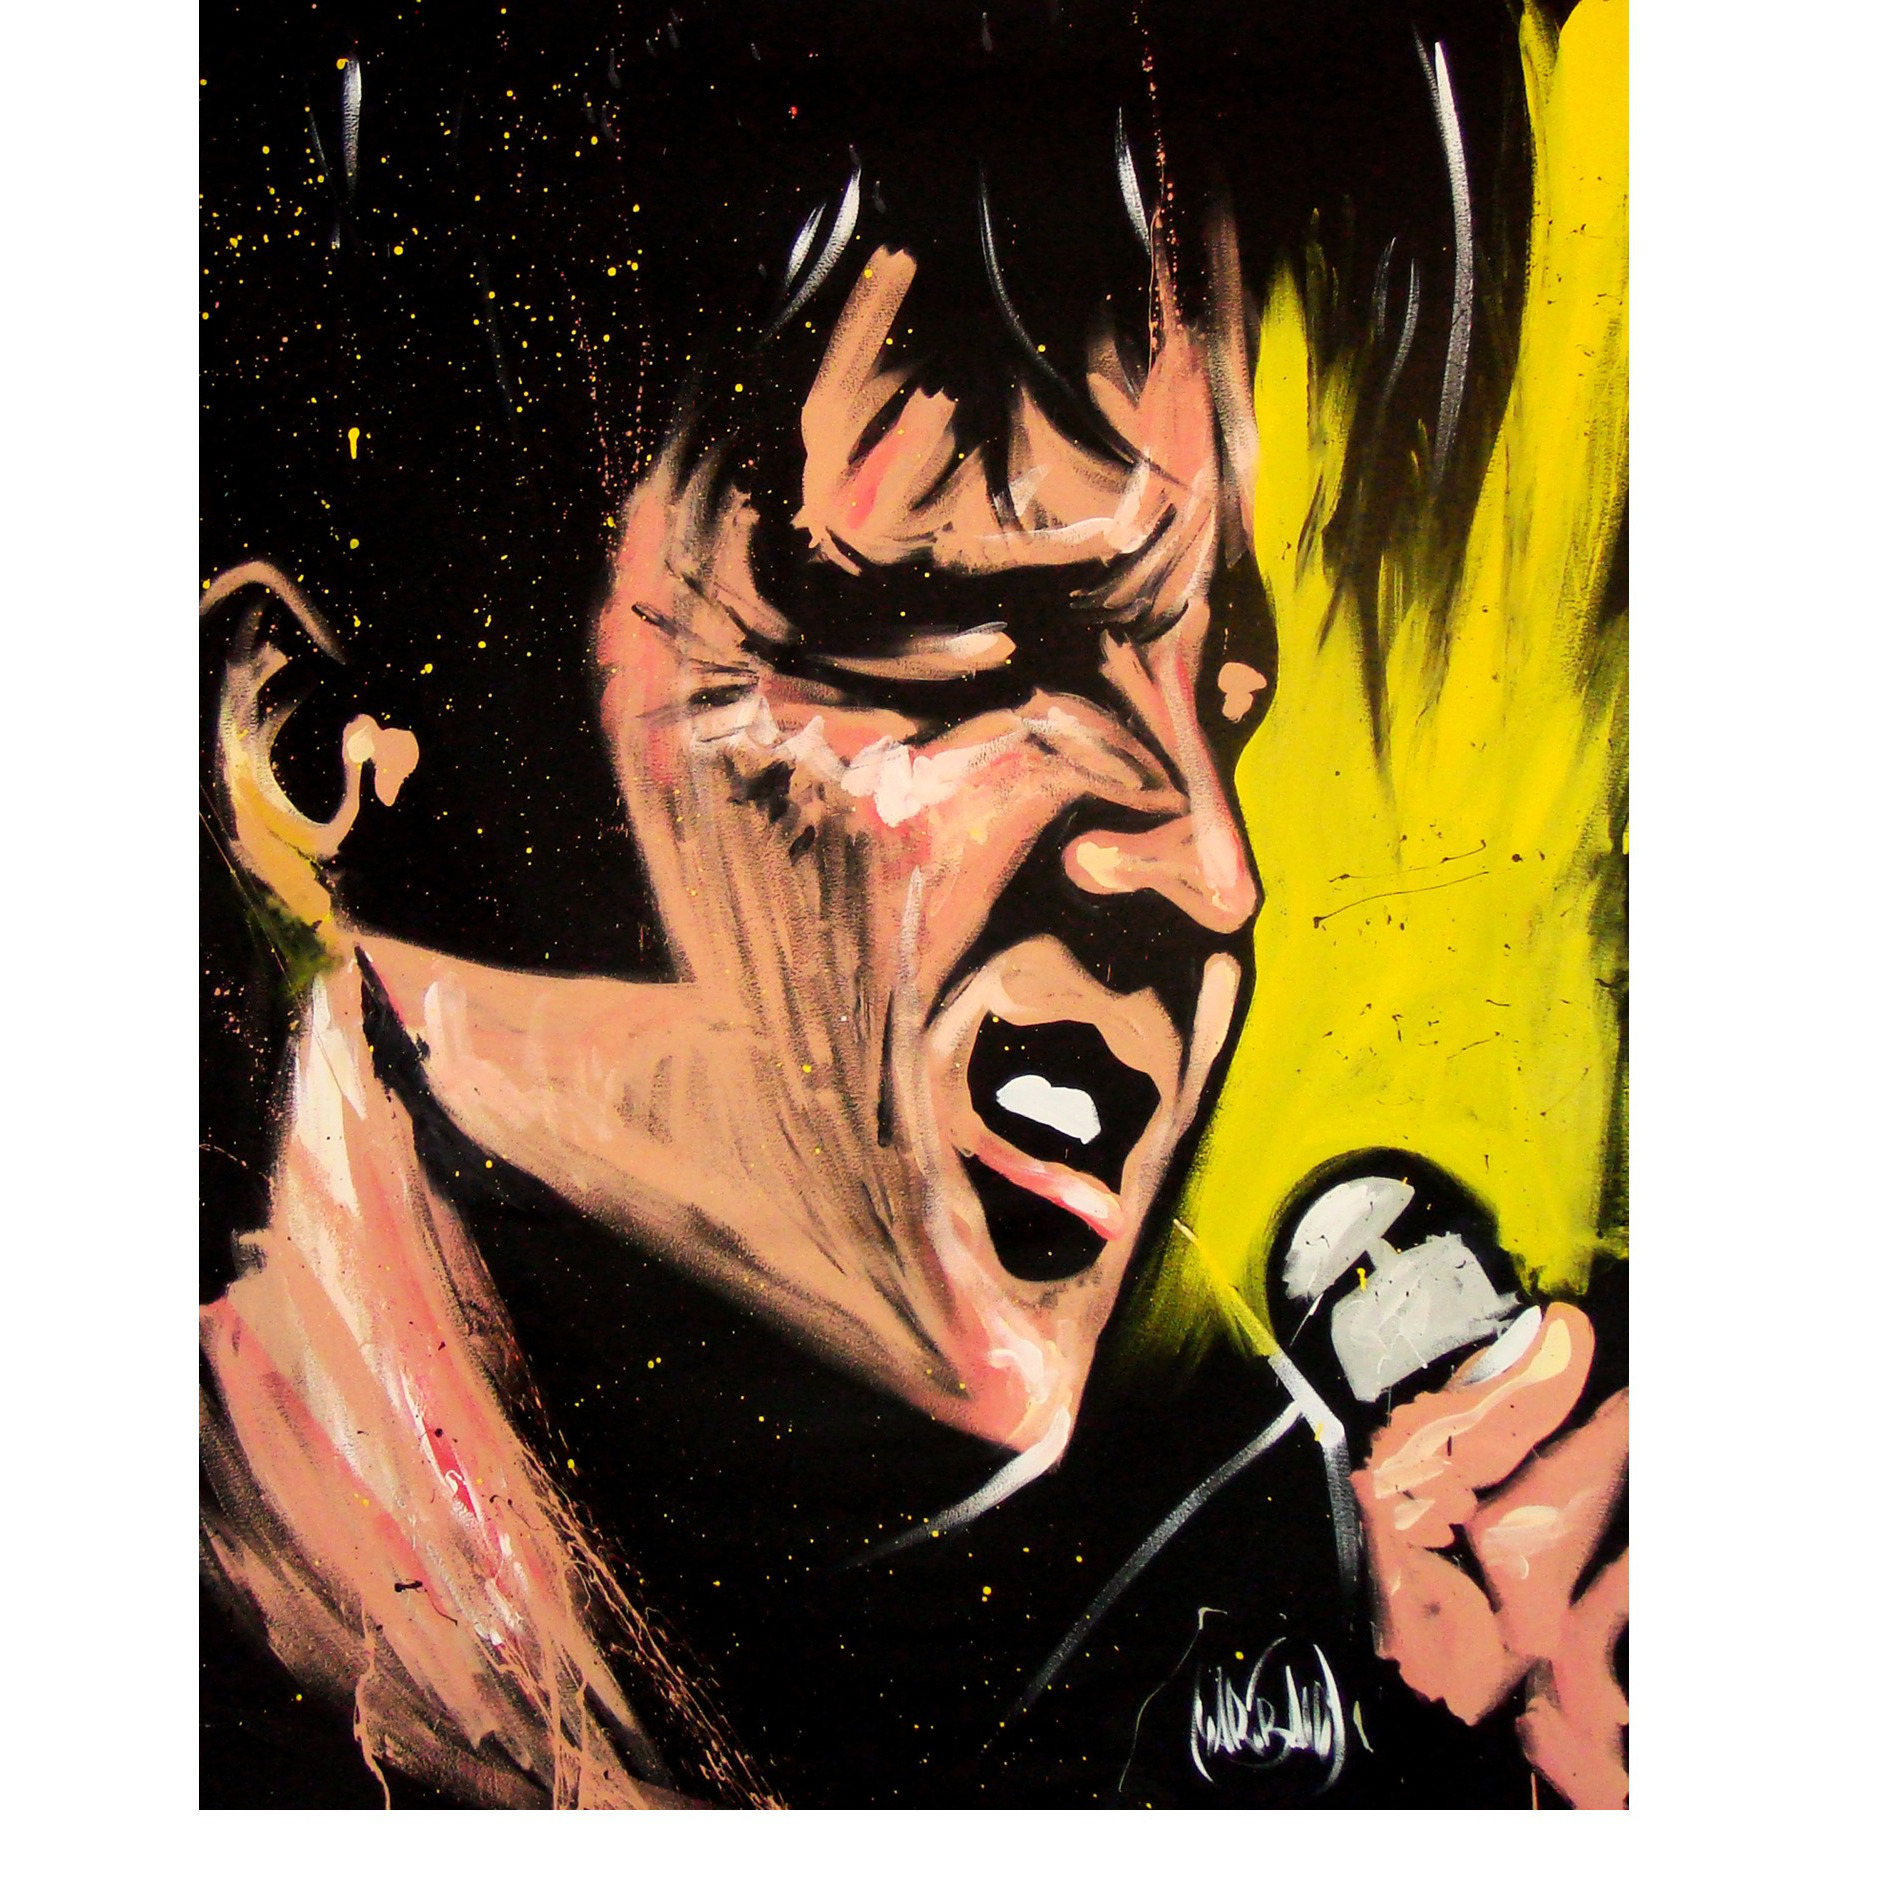 Elvis '68 Comeback Special Art Print by David Garibaldi - 18 by 24 inches